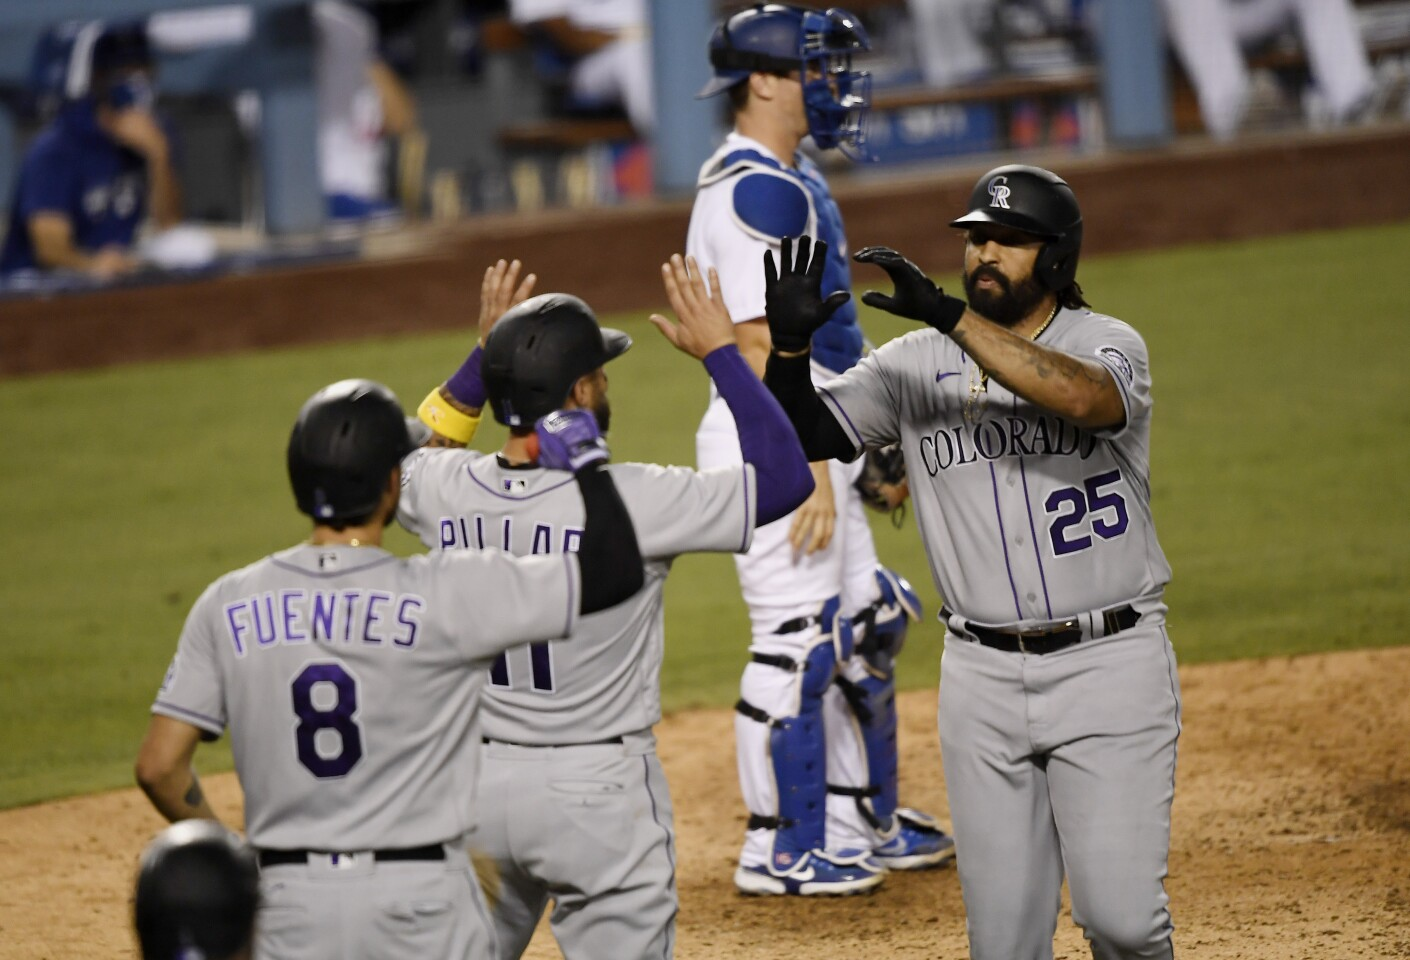 LOS ANGELES, CA - SEPTEMBER 06: Matt Kemp #25 of the Colorado Rockies celebrates his two home run with Kevin Pillar #11 and Josh Fuentes #8 against relief pitcher Caleb Ferguson #64 of the Los Angeles Dodgers during the eight inning at Dodger Stadium on September 6, 2020 in Los Angeles, California. Pillar scored on Kemp's home run. (Photo by Kevork Djansezian/Getty Images)